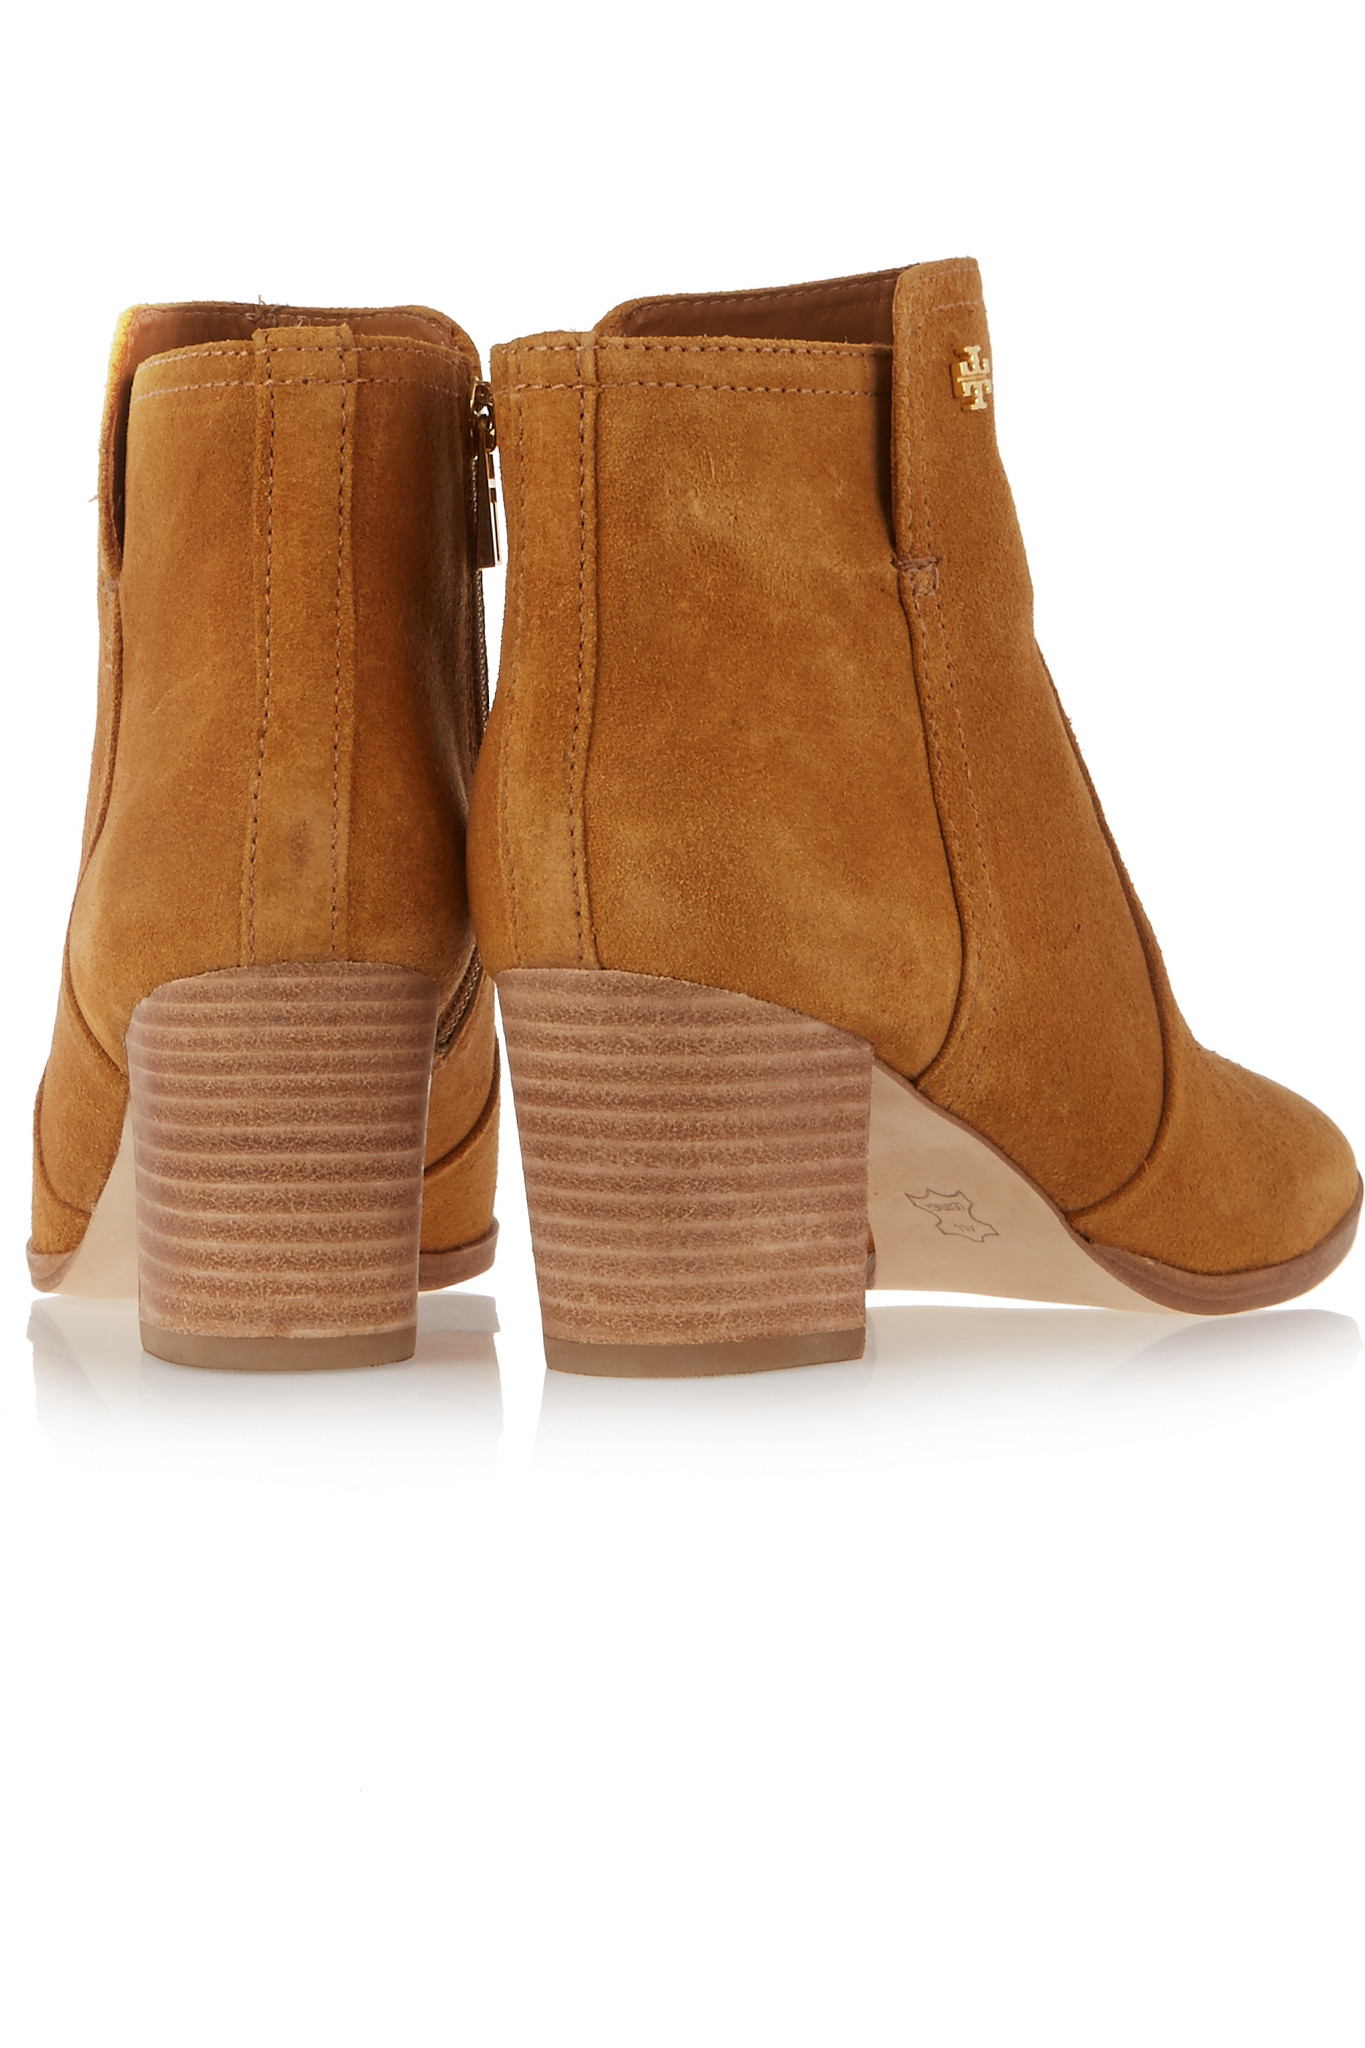 6914540dda8 Tory Burch Sabe Suede Ankle Boots in Brown - Lyst